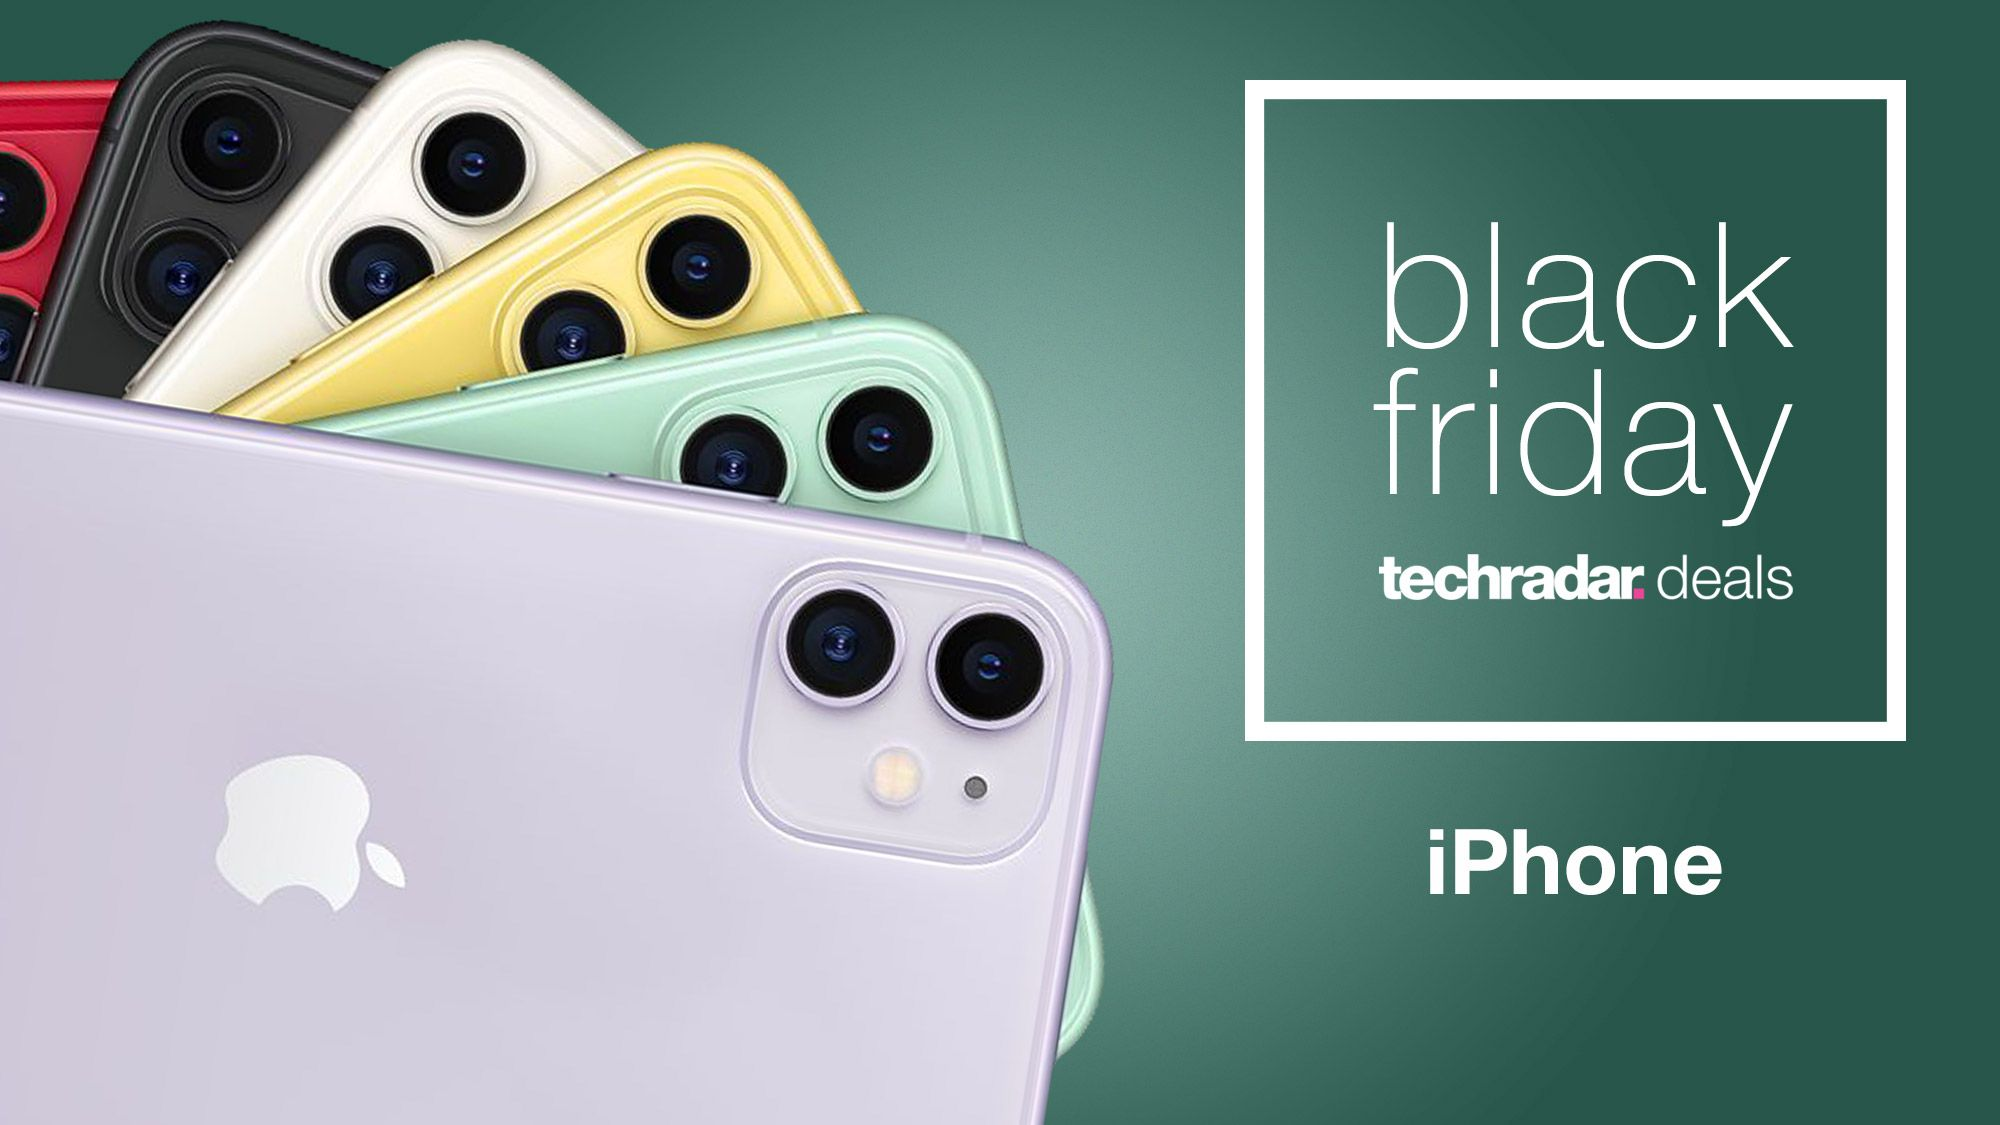 The Best Black Friday Iphone Deals For 2019 In The Us Techradar In 2020 Iphone Deals Iphone Black Friday Iphone Trade In